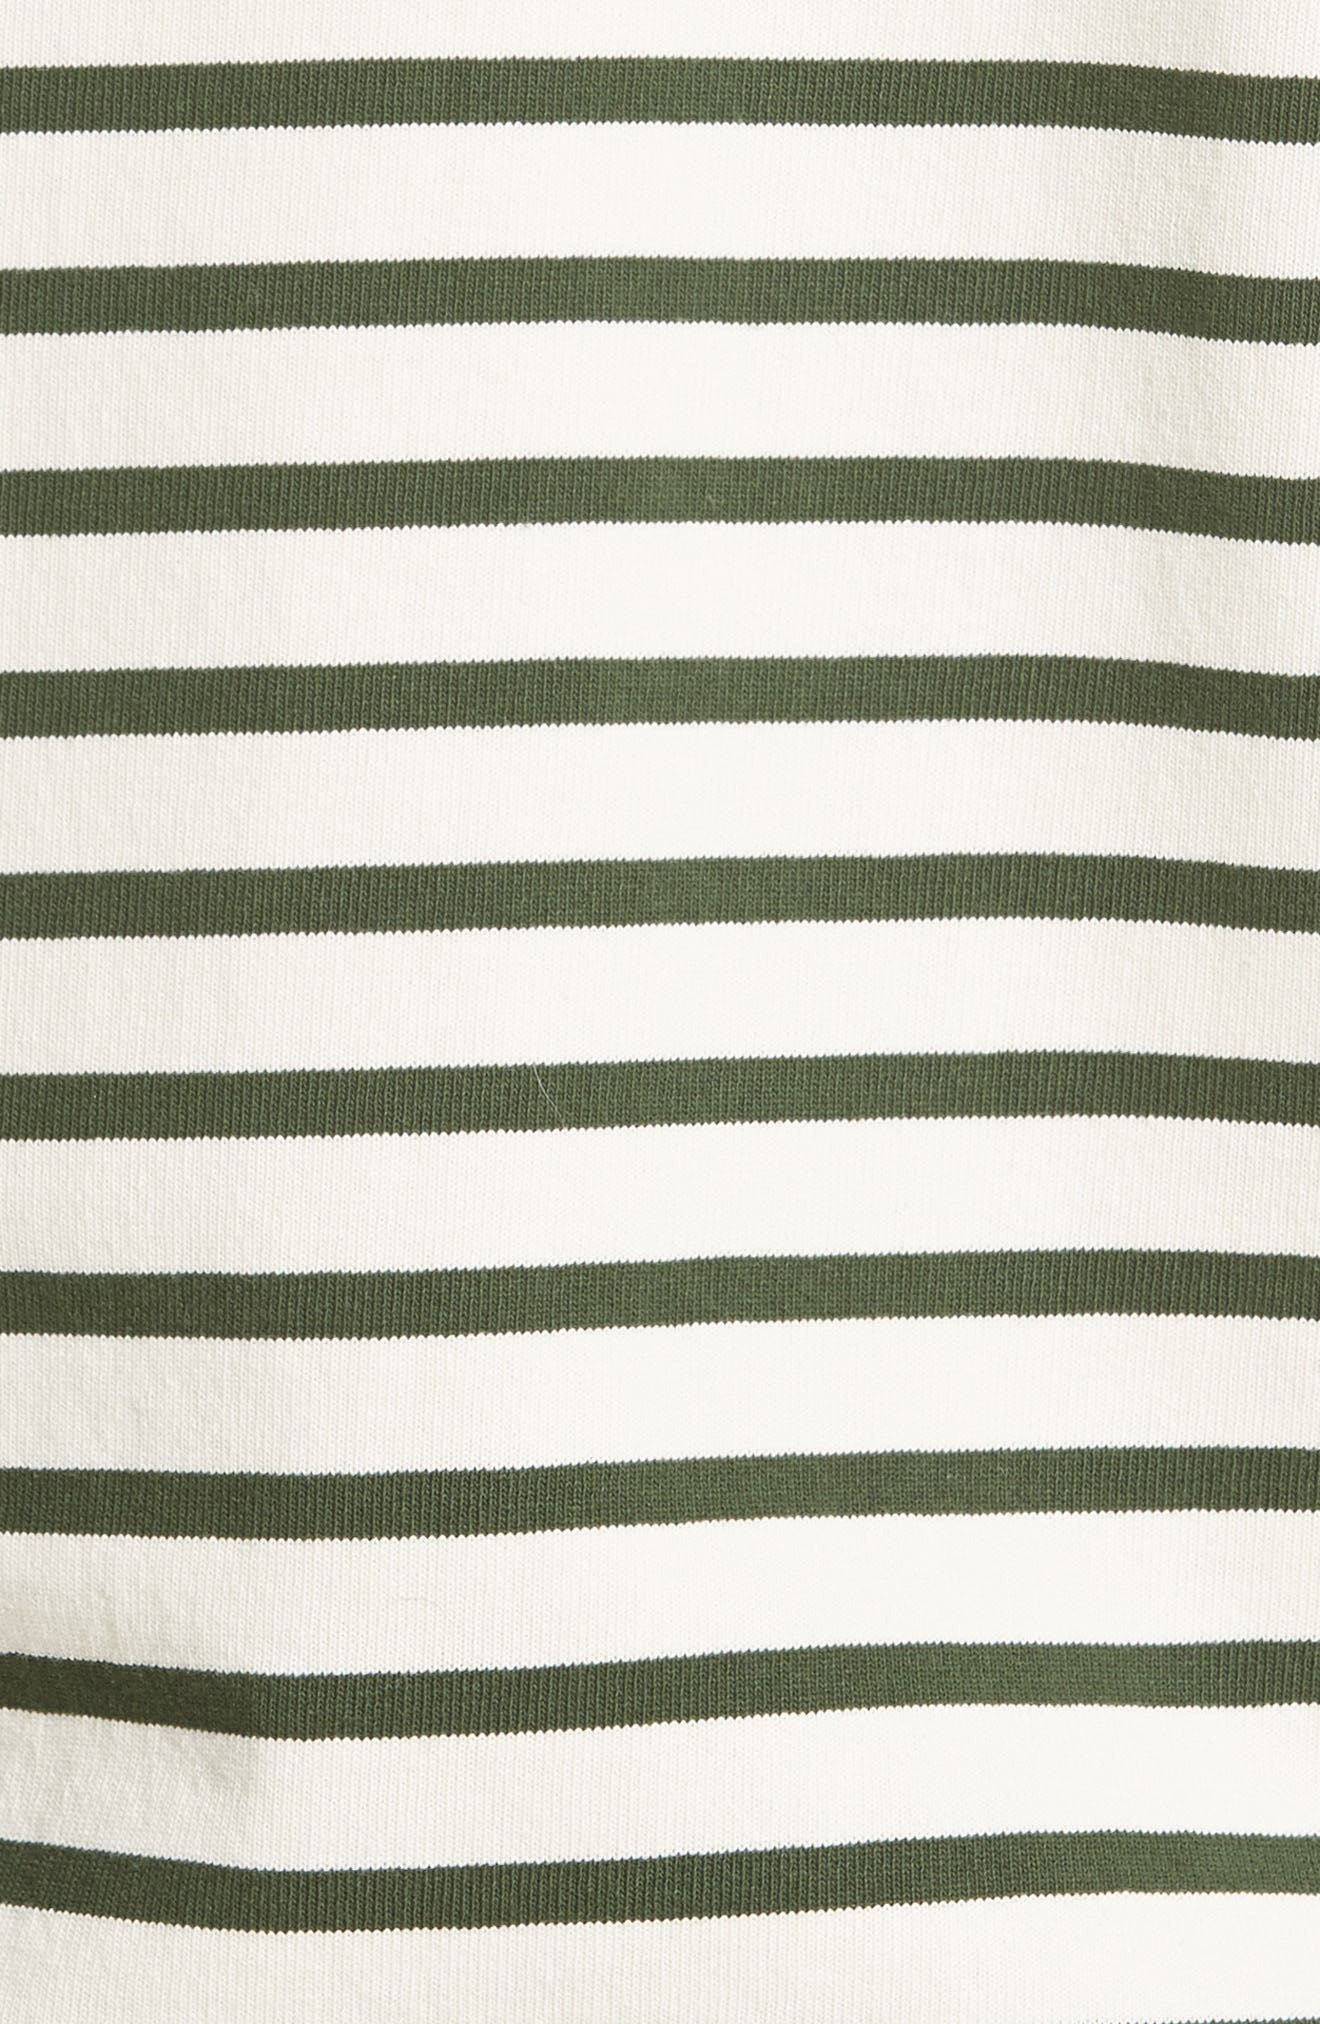 Stripe T-Shirt,                             Alternate thumbnail 5, color,                             Ecru/Forest Green